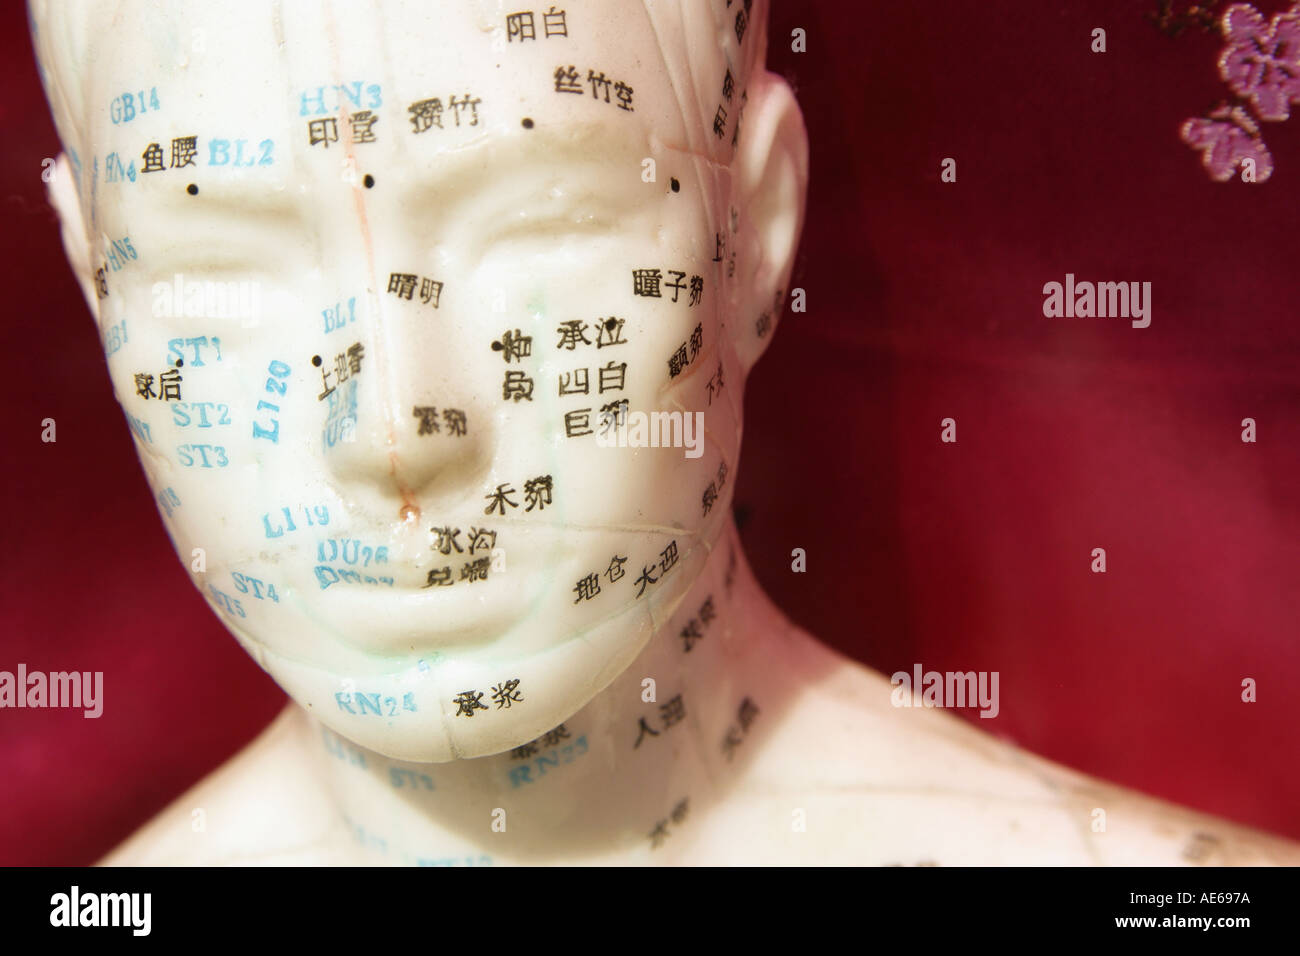 Acupuncture Points Stock Photos & Acupuncture Points Stock